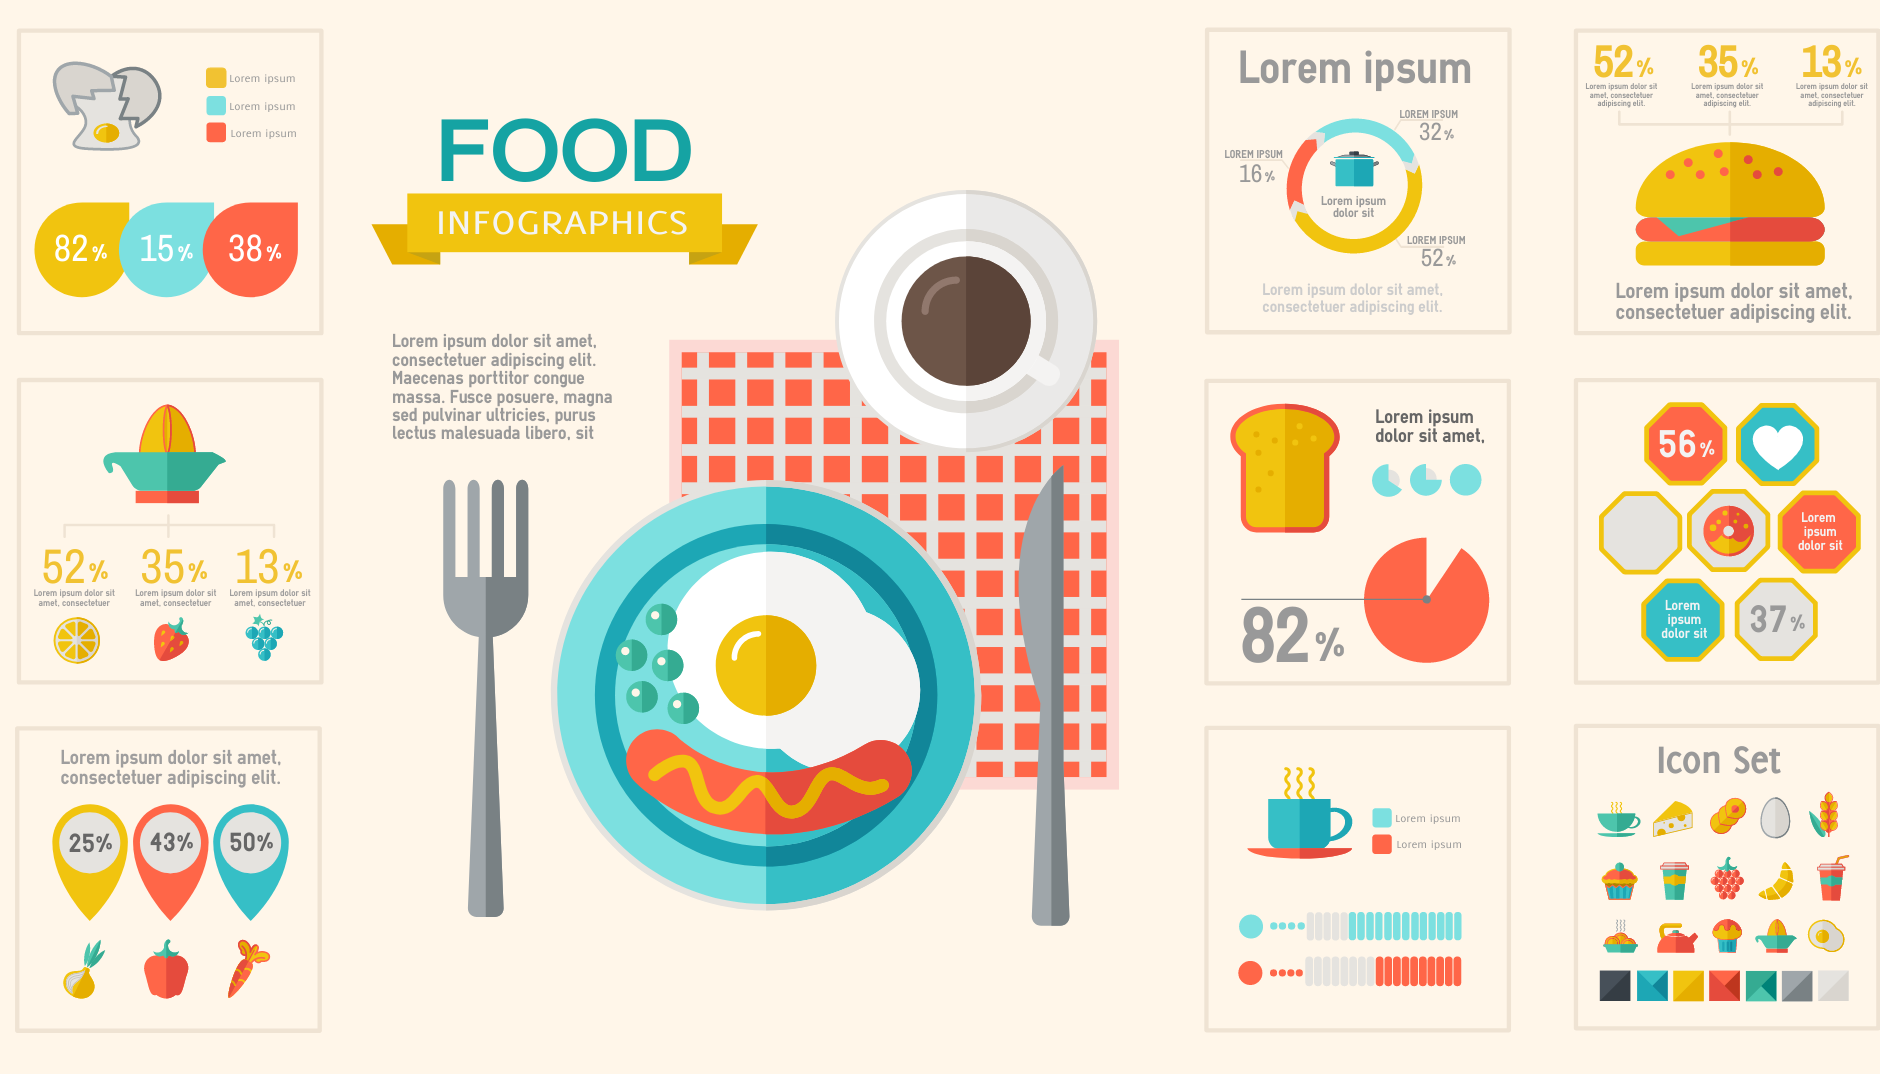 infographic about food facts.